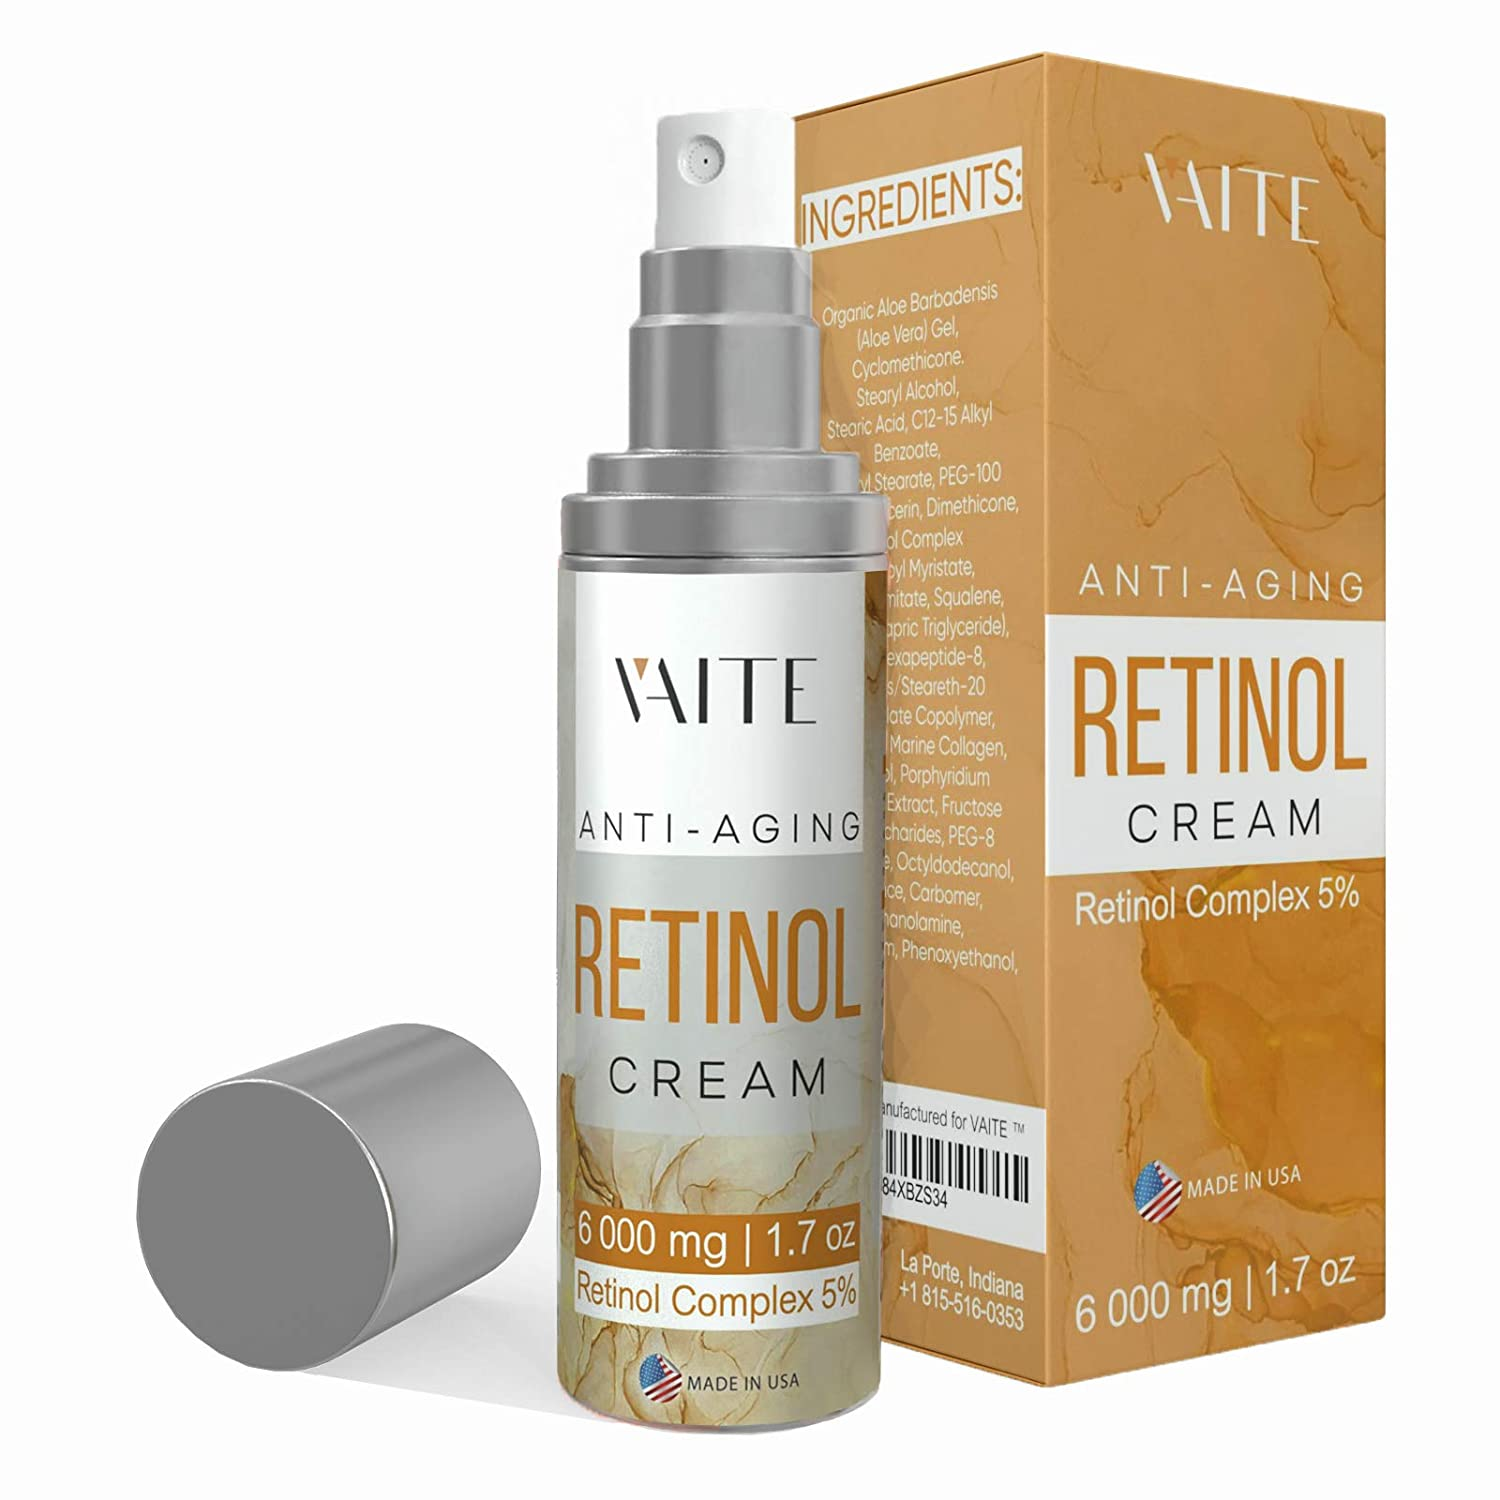 Retinol Face Cream 5% Eye Moisturizer with Hyaluronic Acid, Vitamin E for Fine Lines, Dark Spots, Wrinkles - Best Day & Night Facial Anti-Aging Creams That Really Work for Women and Men